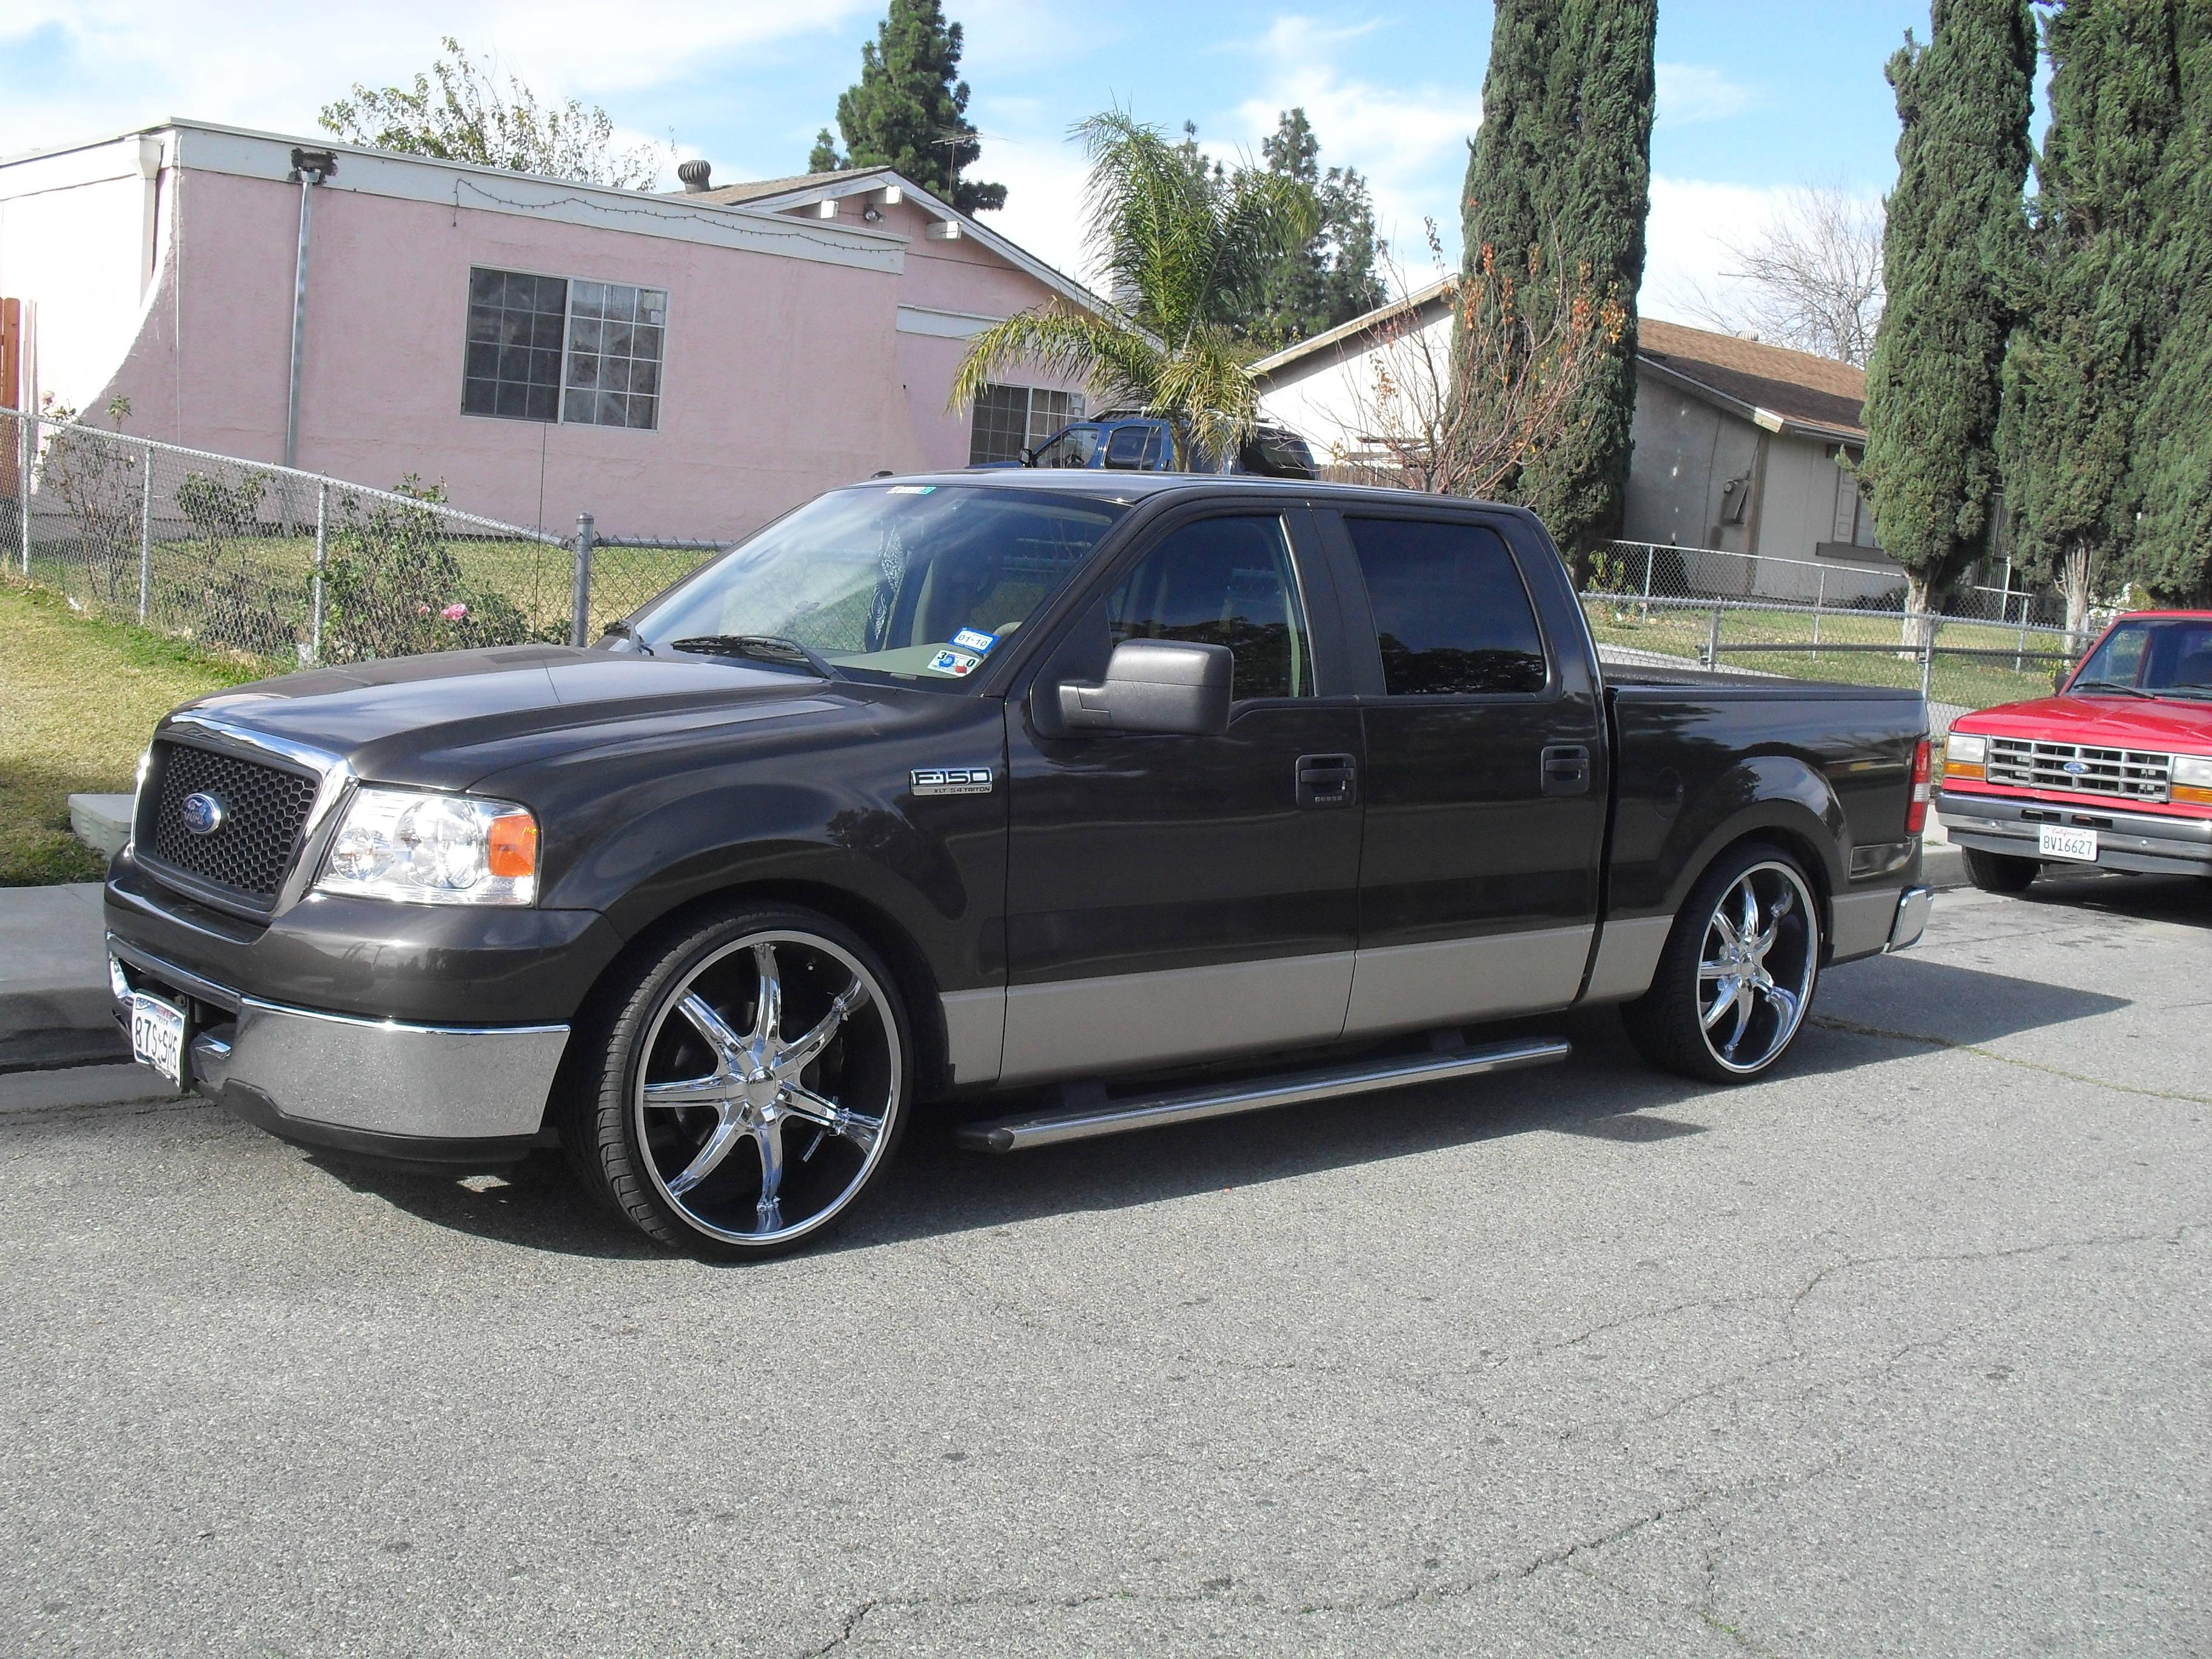 1234555 2007 ford f150 supercrew cab specs photos modification info at cardomain. Black Bedroom Furniture Sets. Home Design Ideas